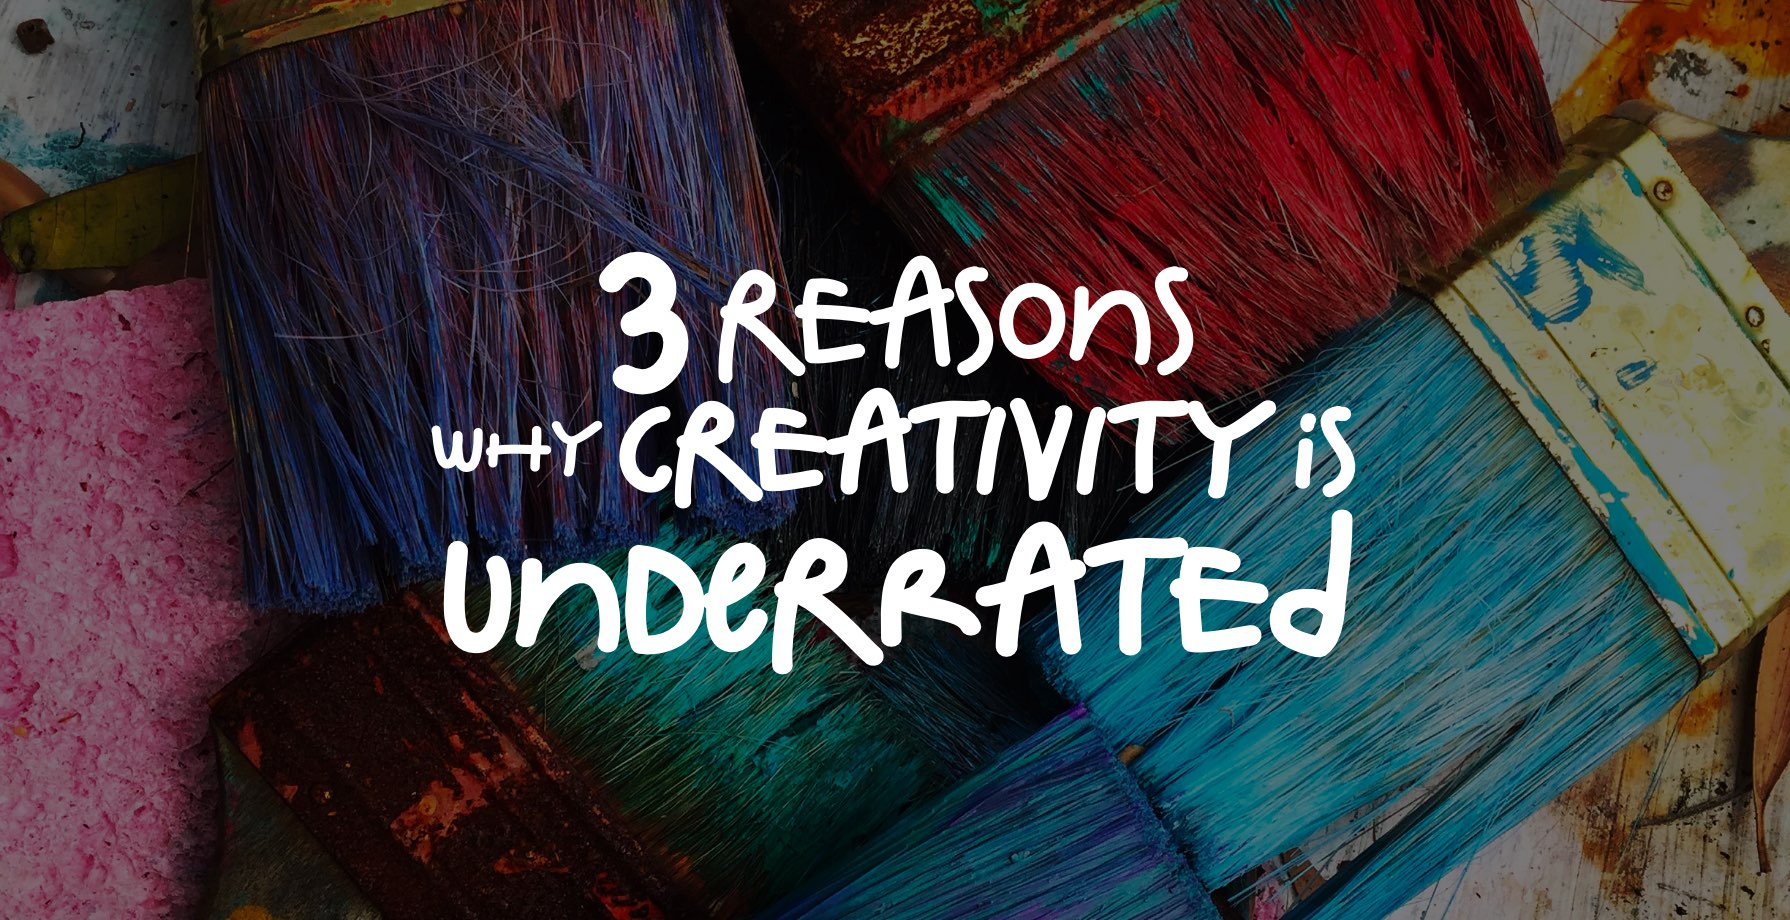 3 Simple Reasons Why Creativity is Underrated!